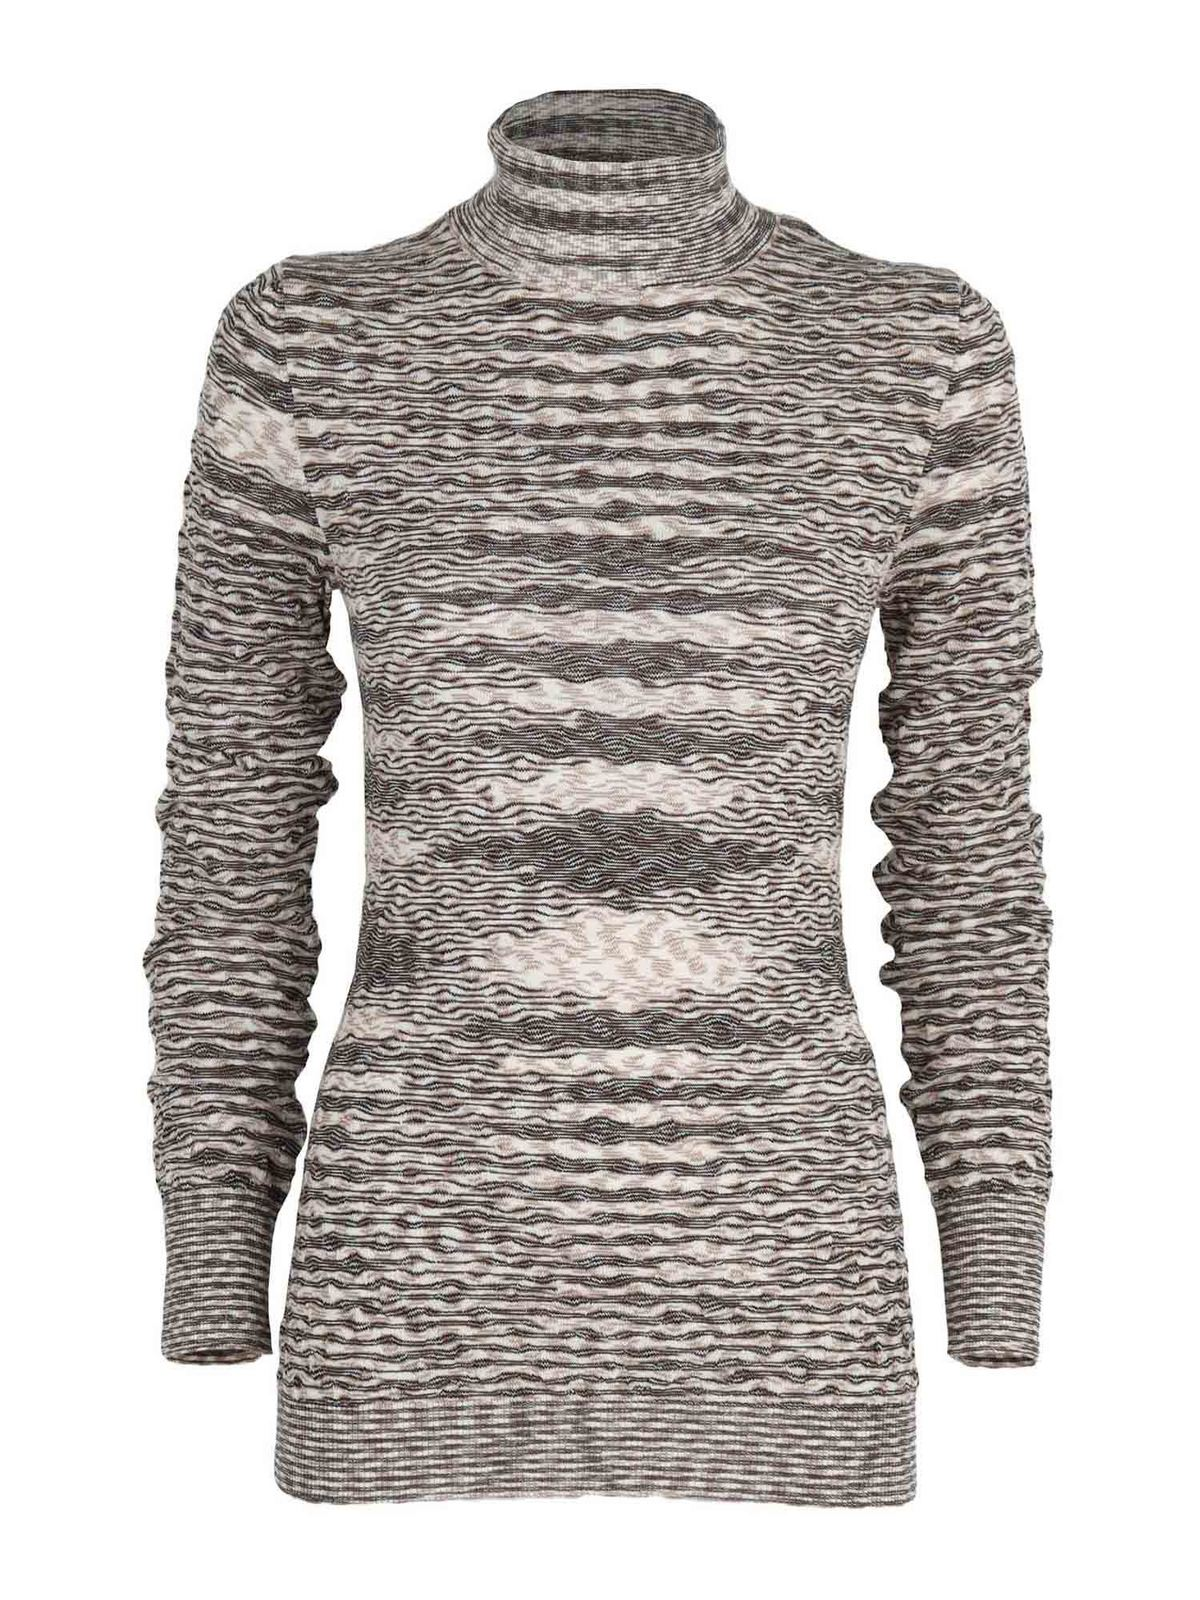 Missoni WOOL PULLOVER IN GREY AND BEIGE